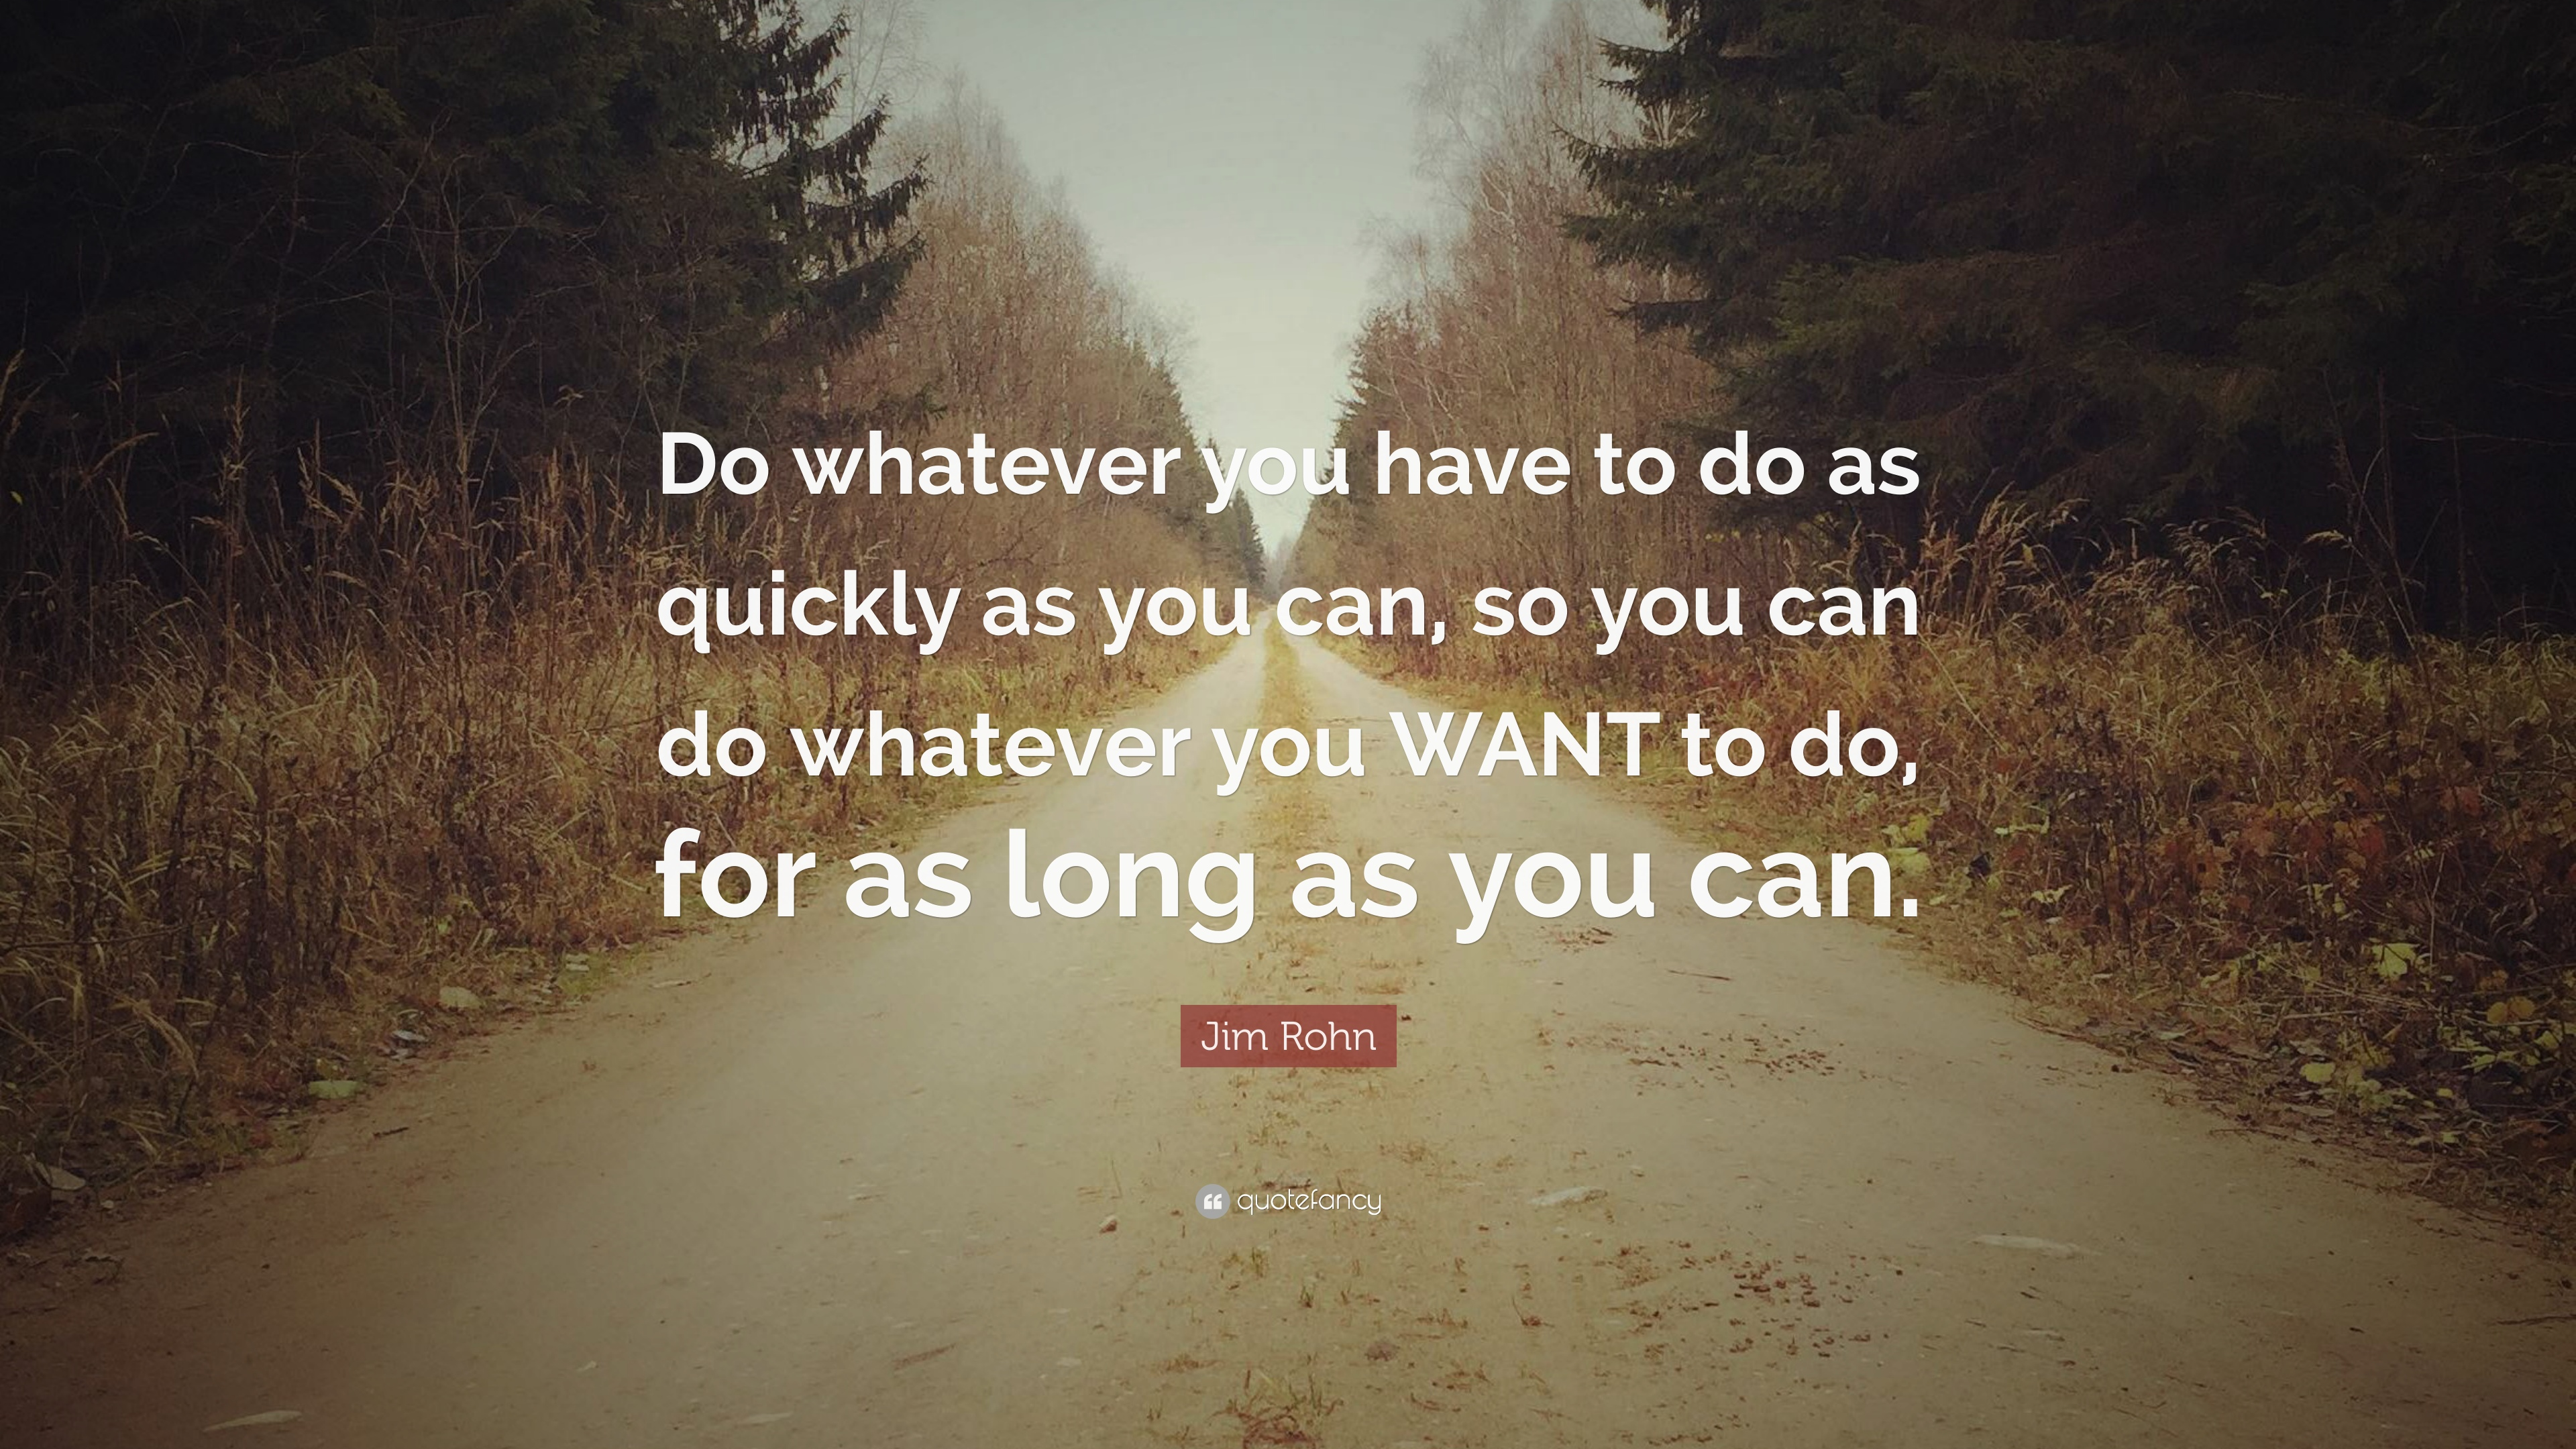 Jim Rohn Quote Do Whatever You Have To Do As Quickly As You Can